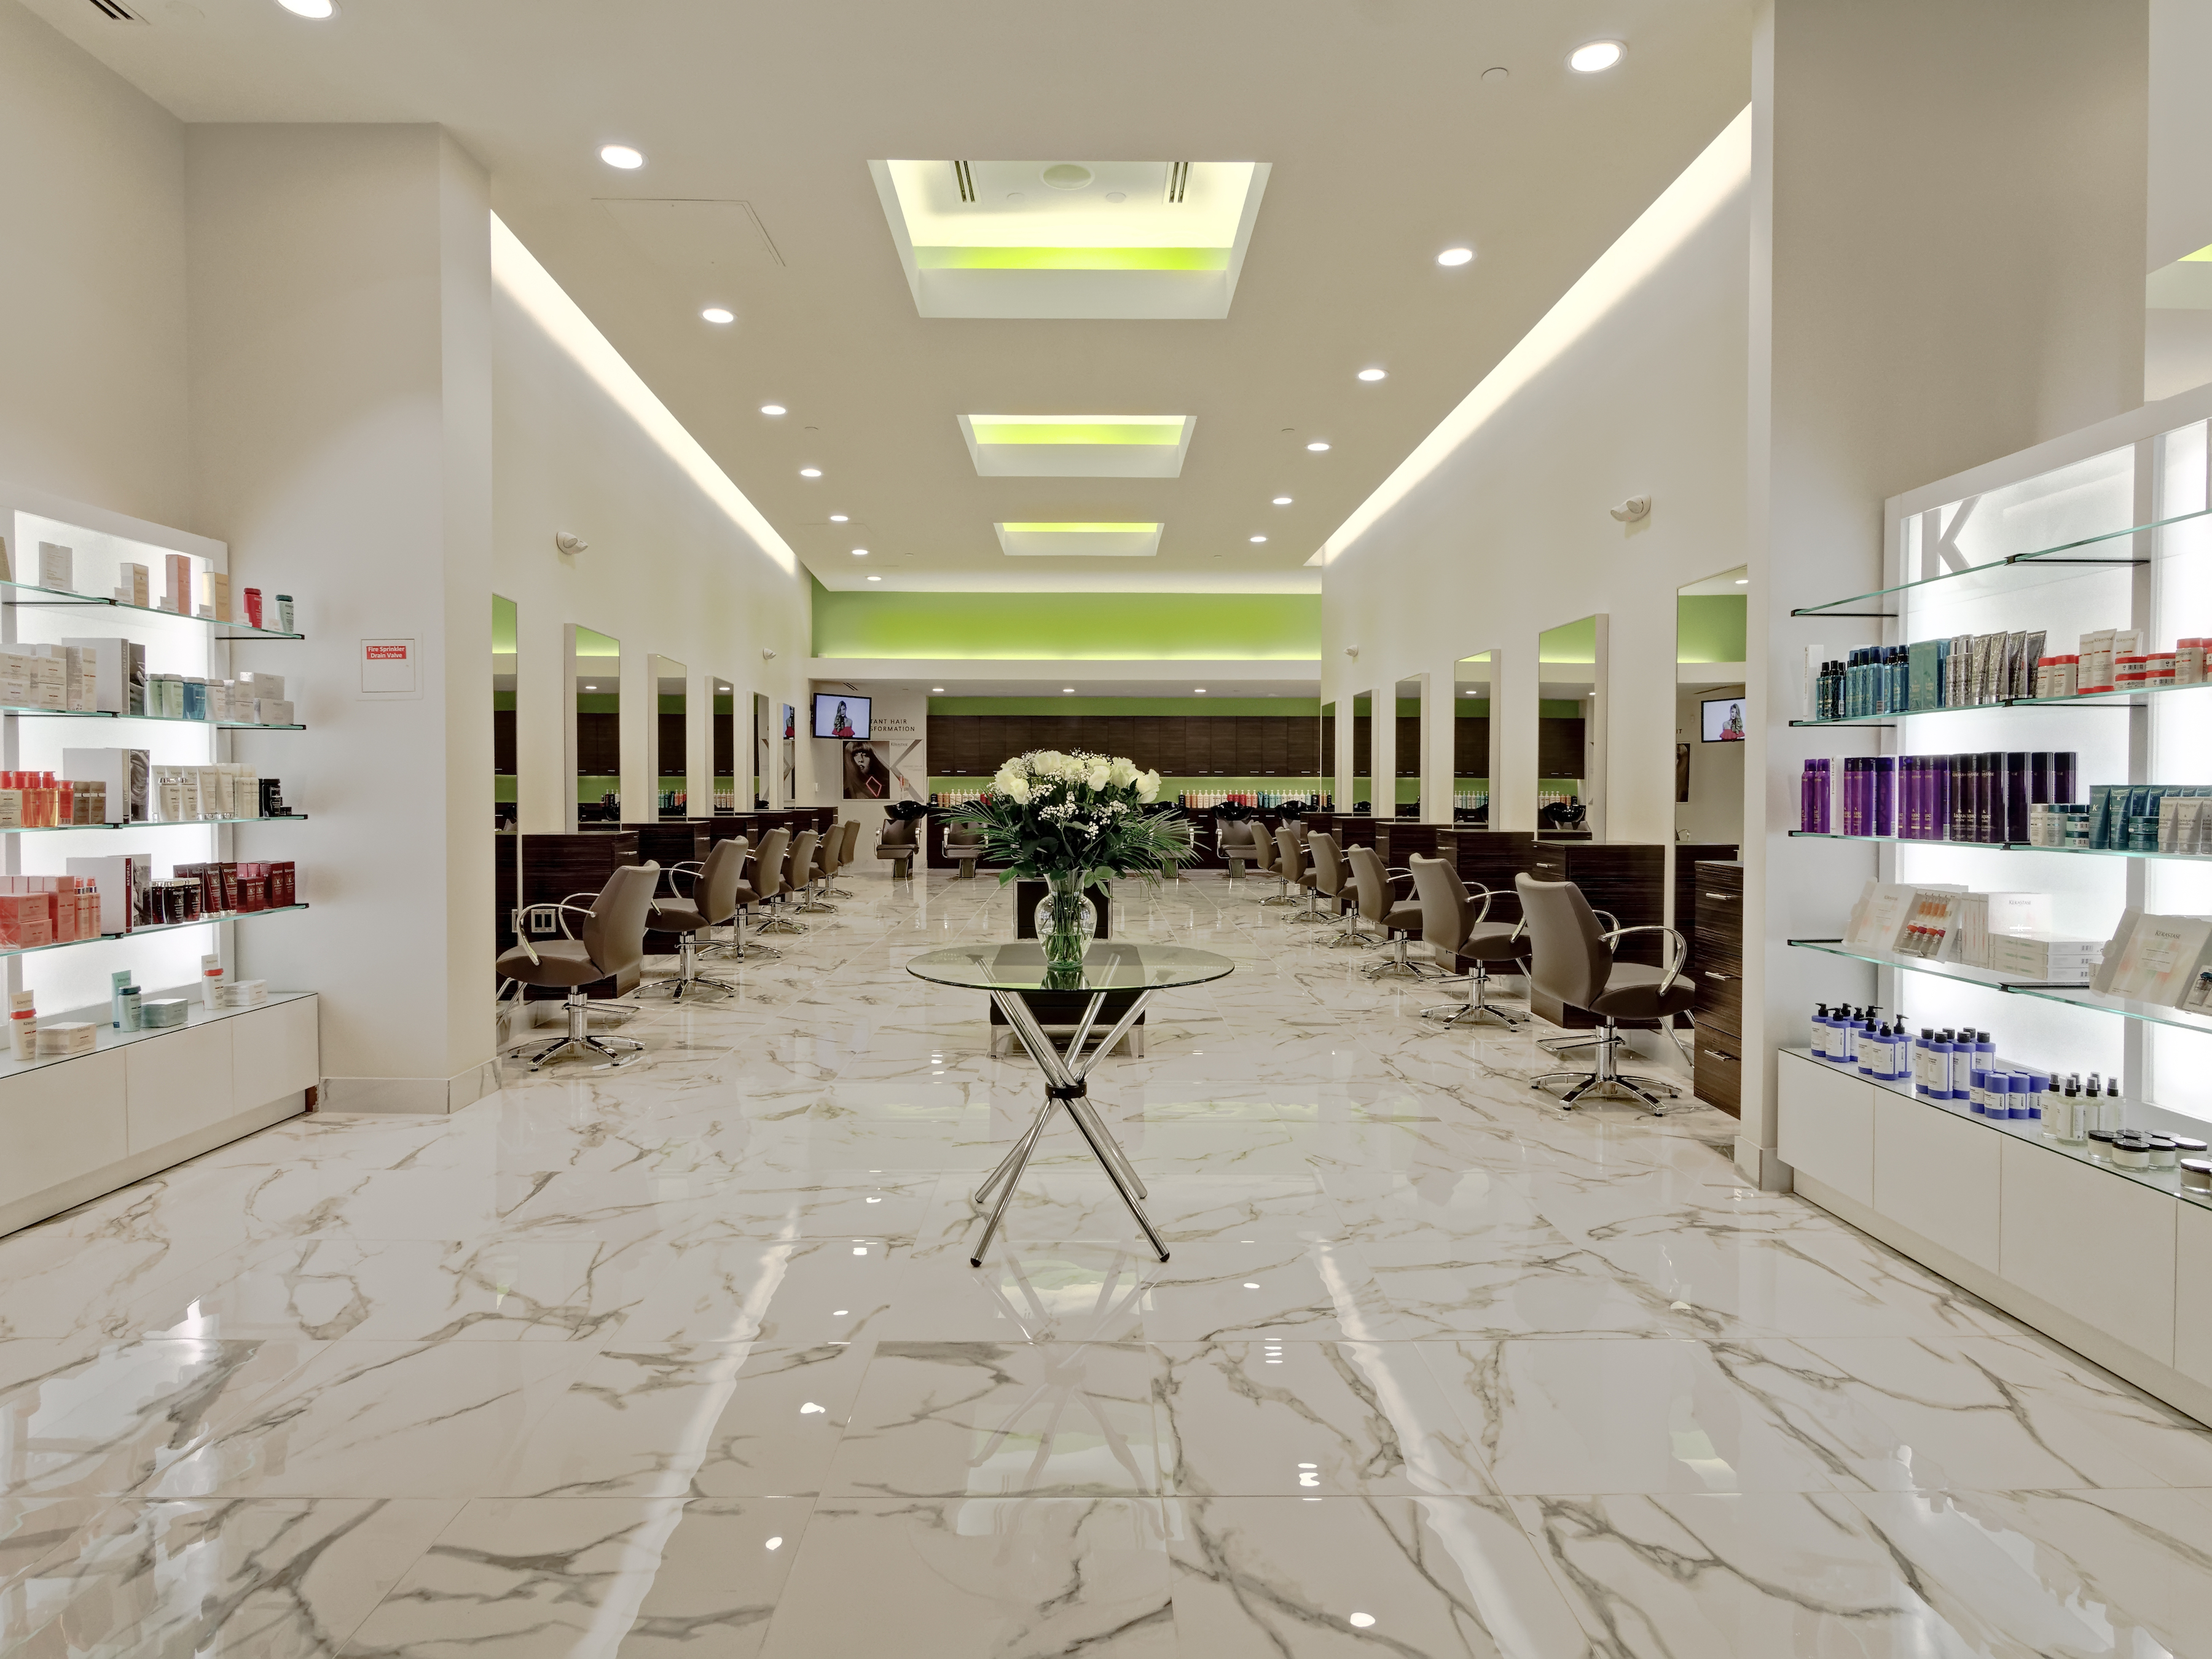 2018 Salons of the Year: Aalam The Salon